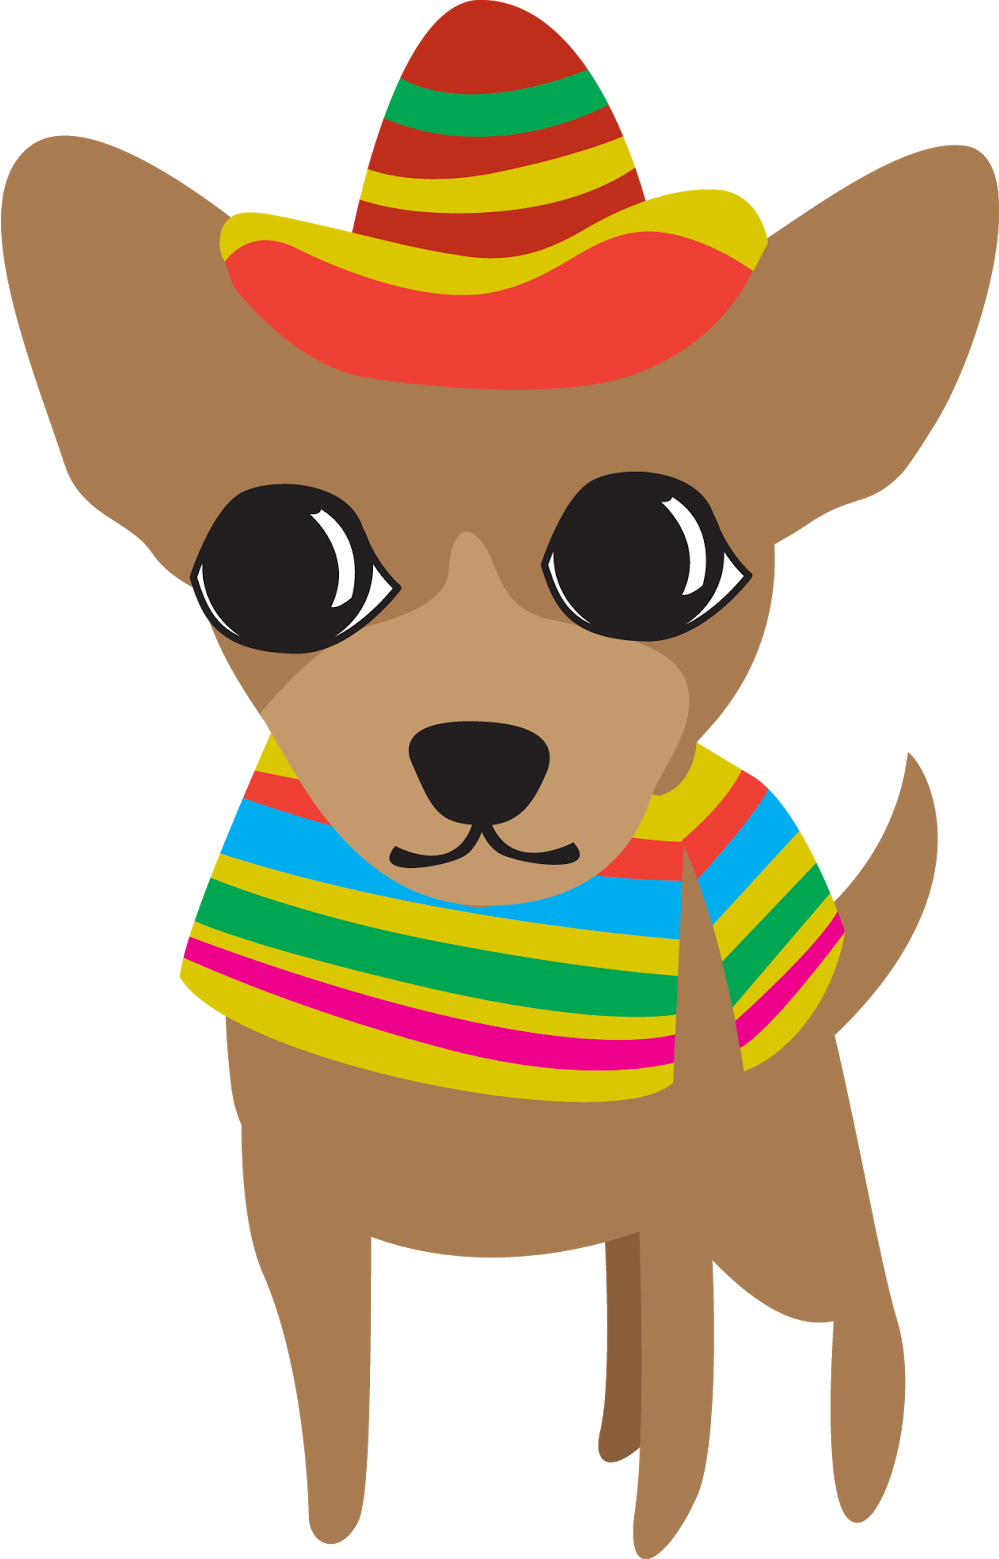 Chihuahua dog clipart picture free download cincodemayo chihuahua dog - Sticker by angie nelson picture free download